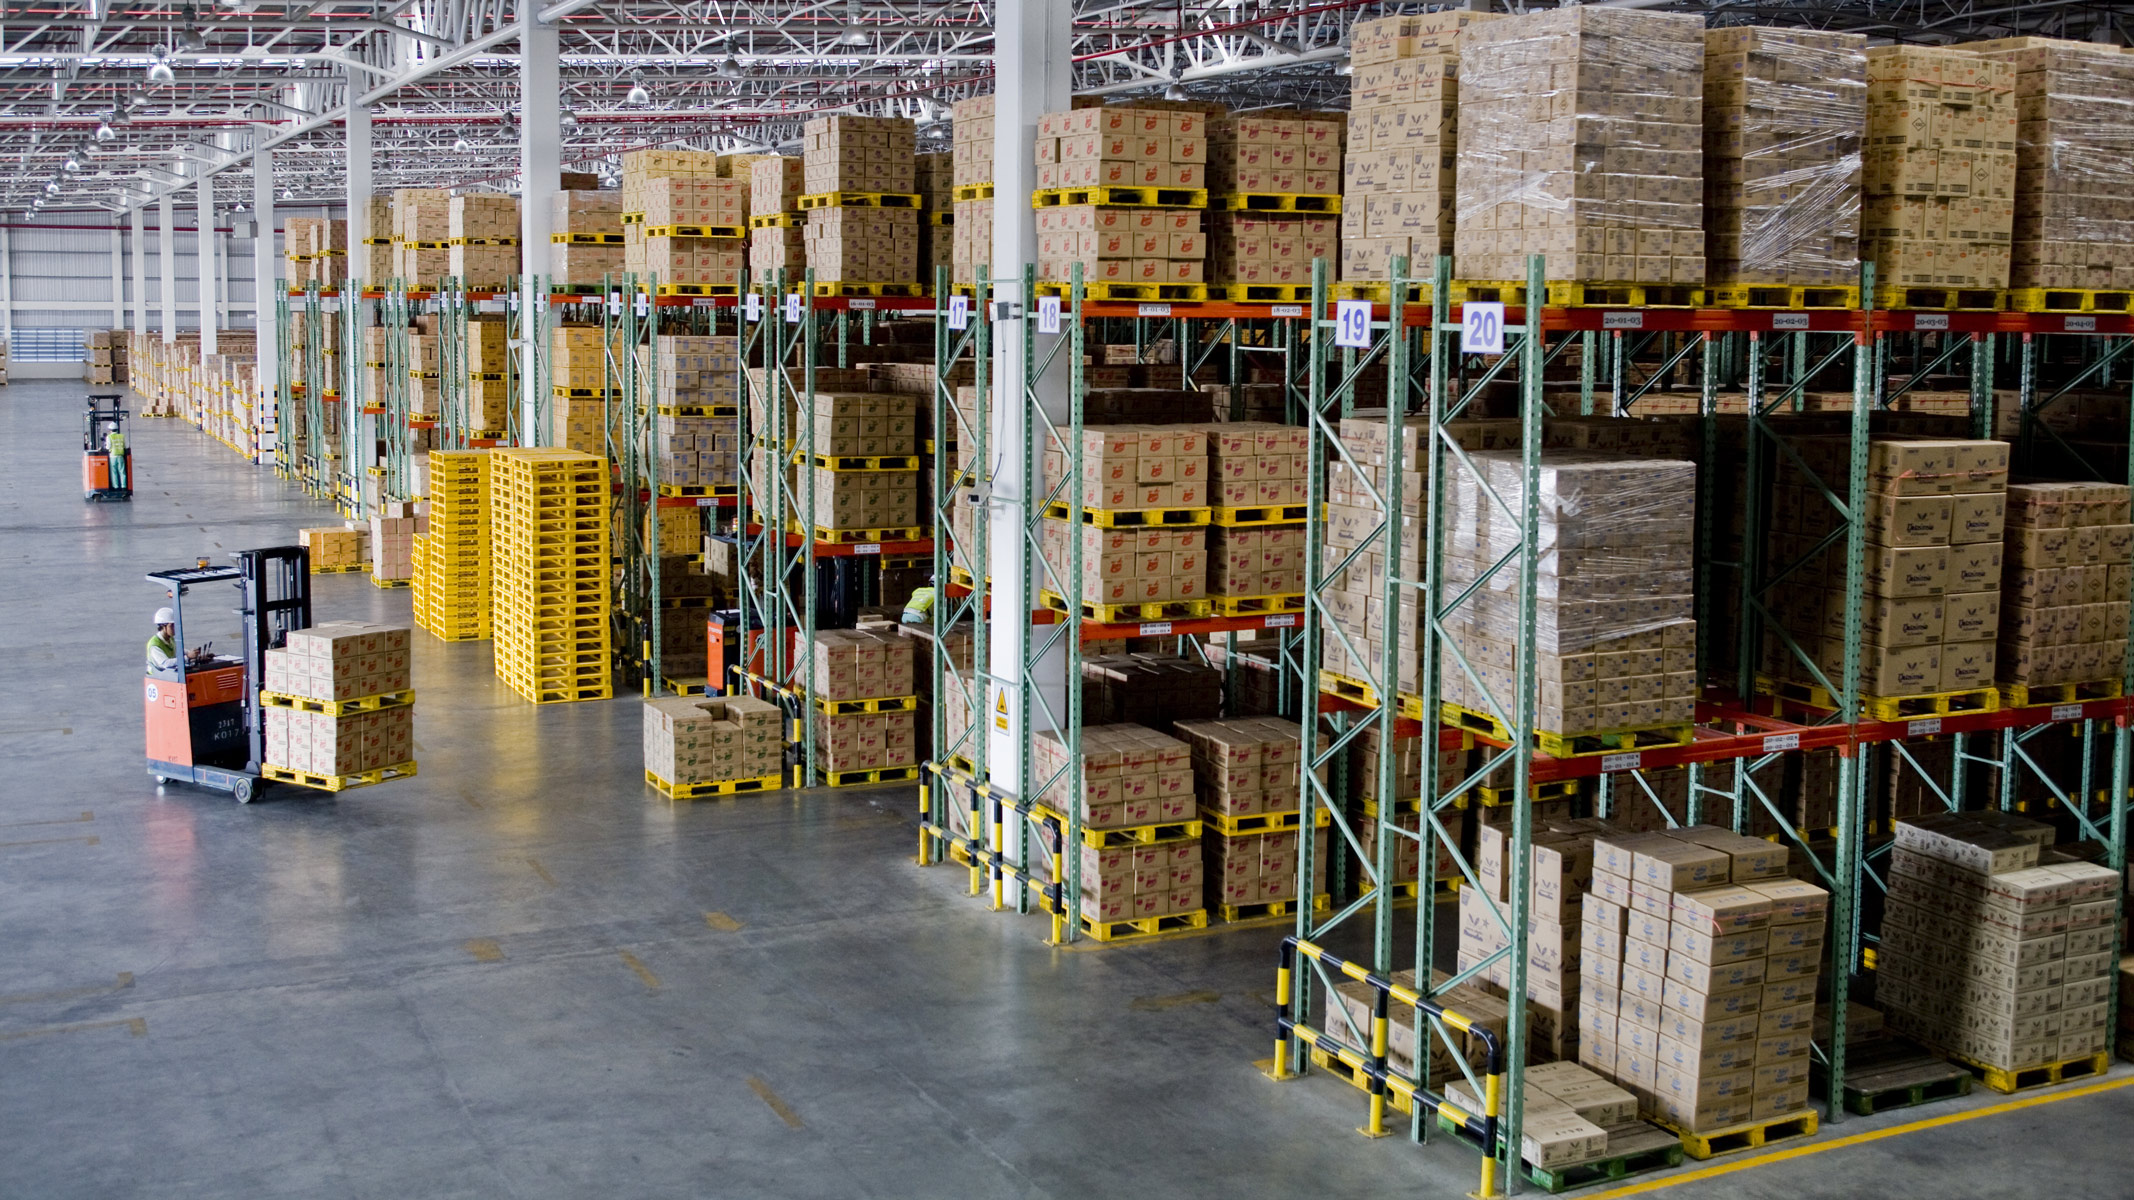 Large warehouse stacked full of boxes